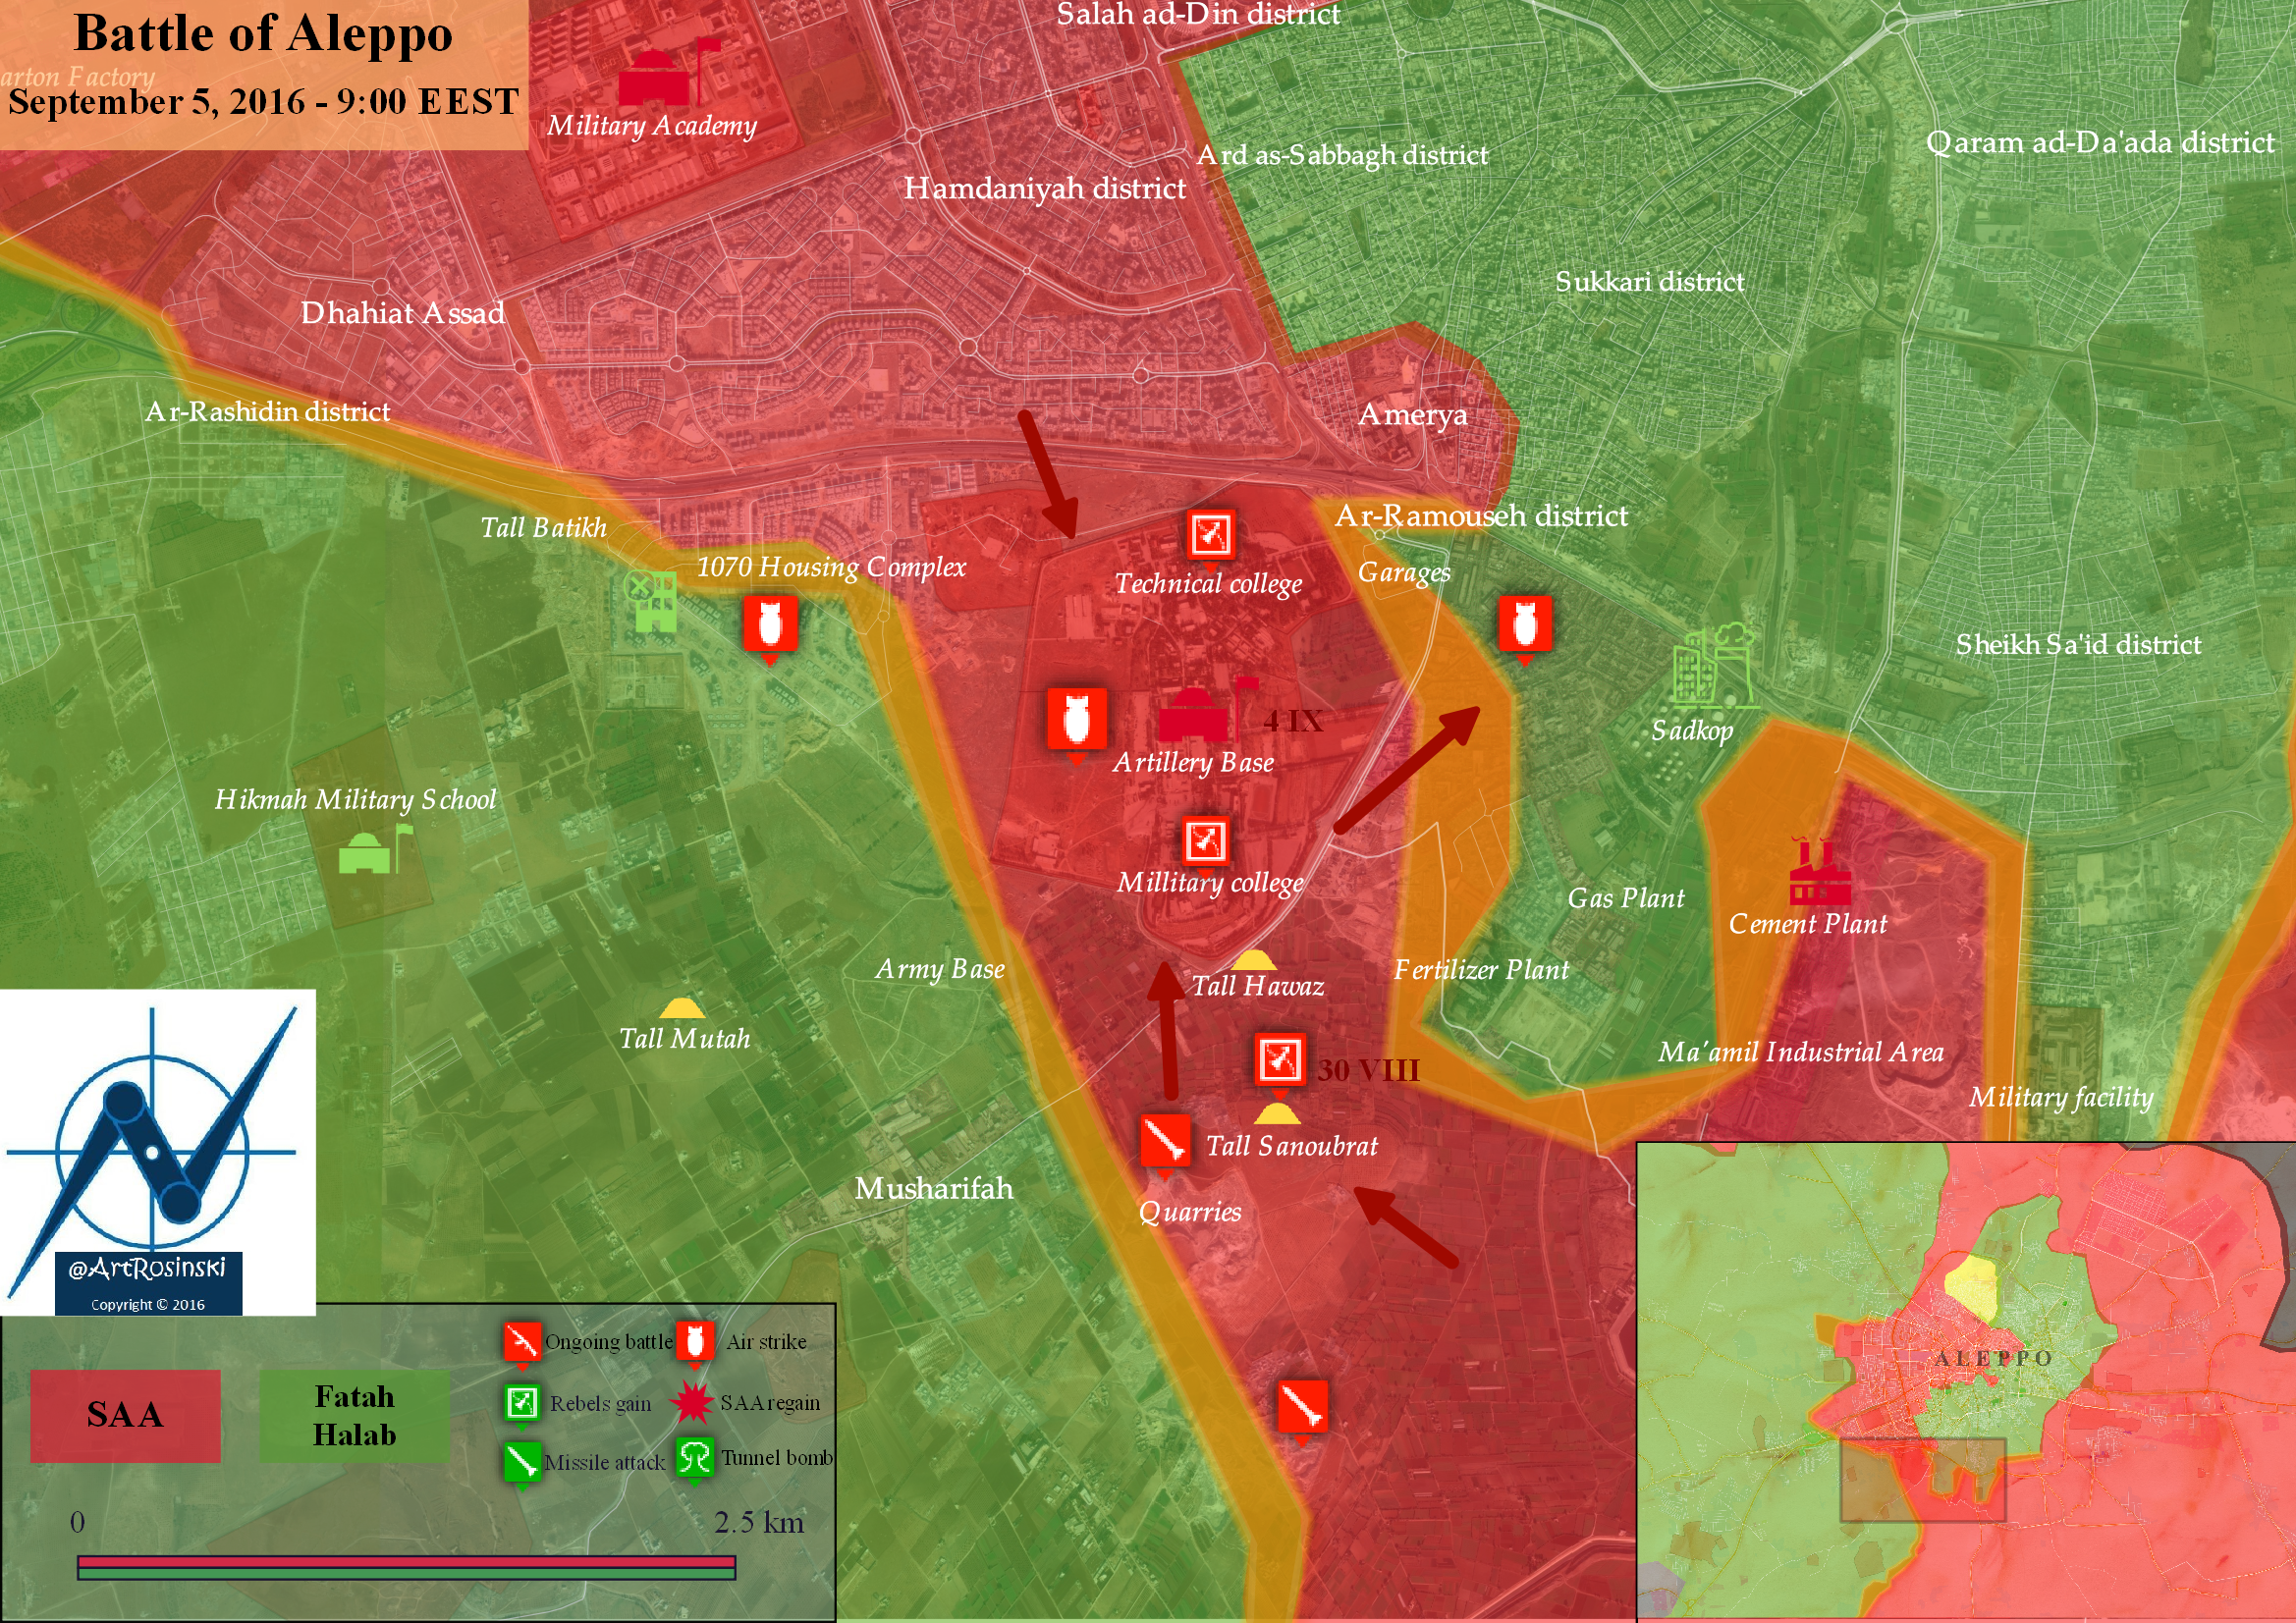 Battle of Aleppo (September 5, 2016)